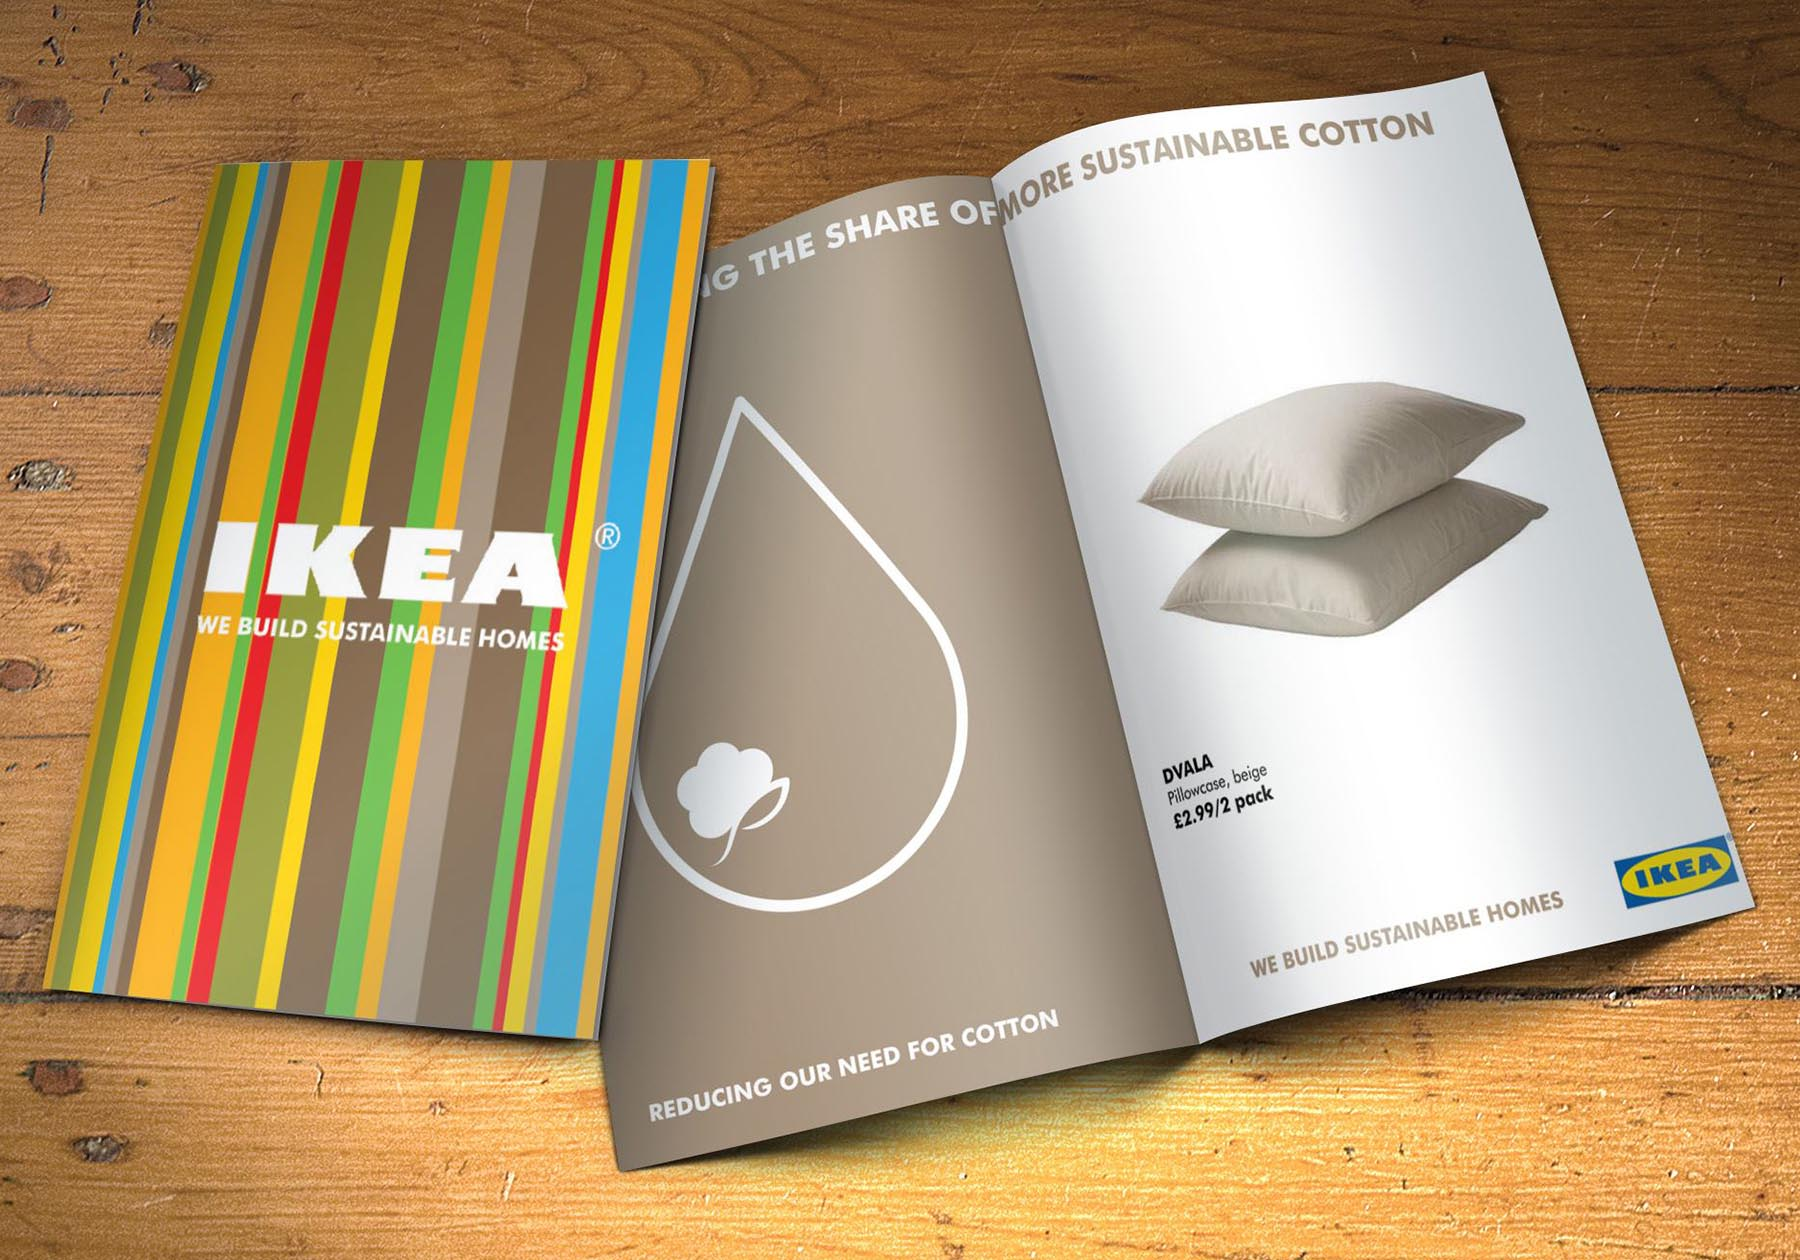 Double page spread for Ikea's position on sustainable cotton